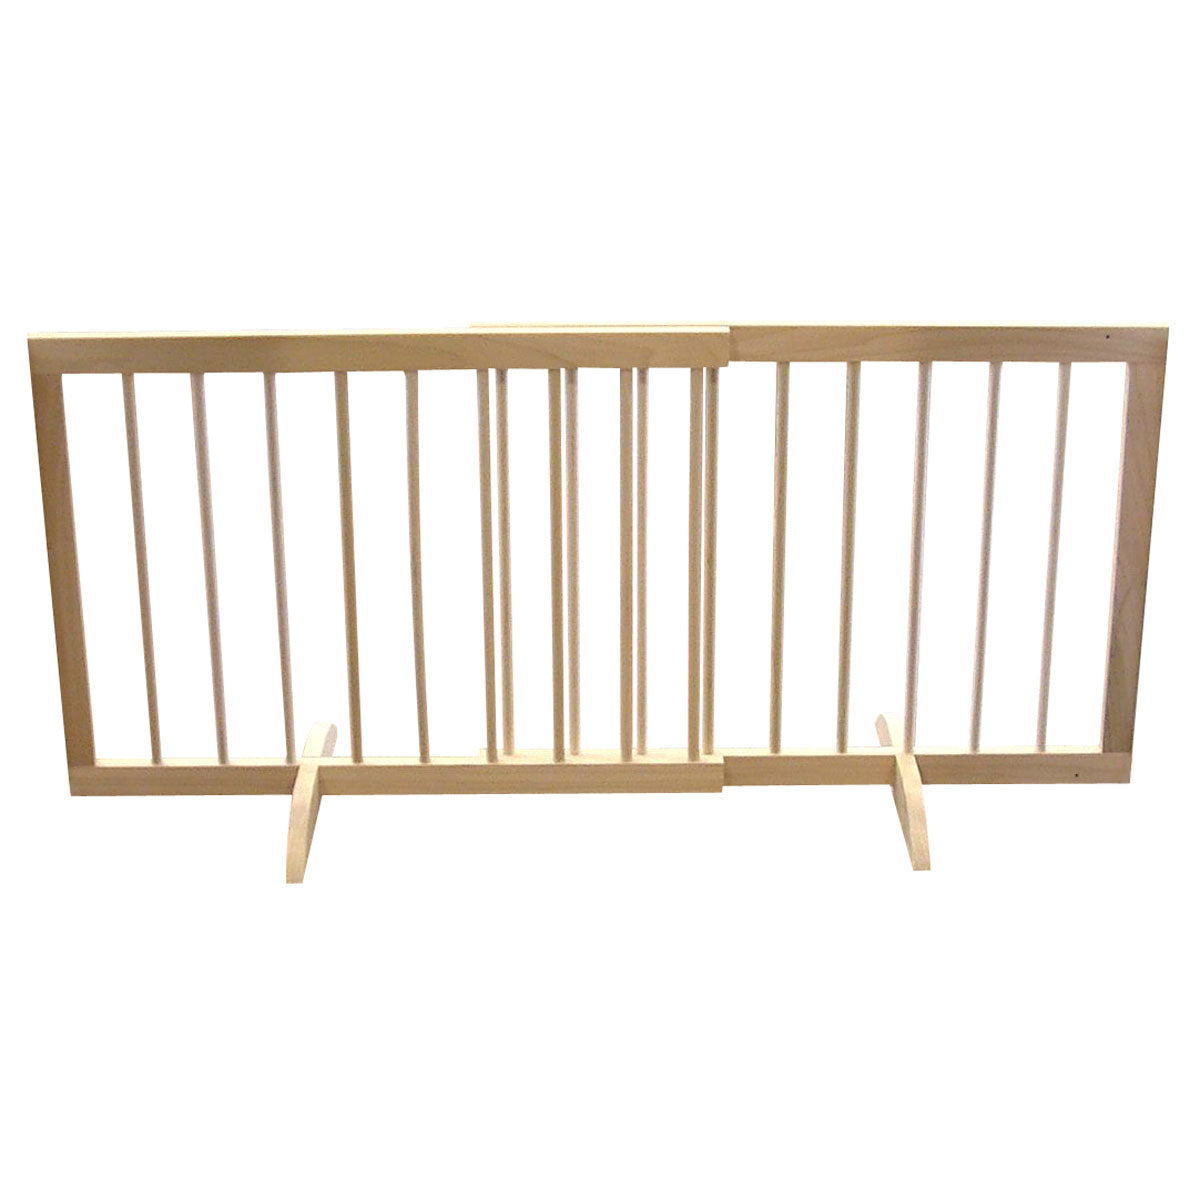 "Cardinal Gates Step Over Free Standing Pet Gate Light Oak 28"" - 51.75"" x 2"" x 20"" Dog Gates - London the Local"